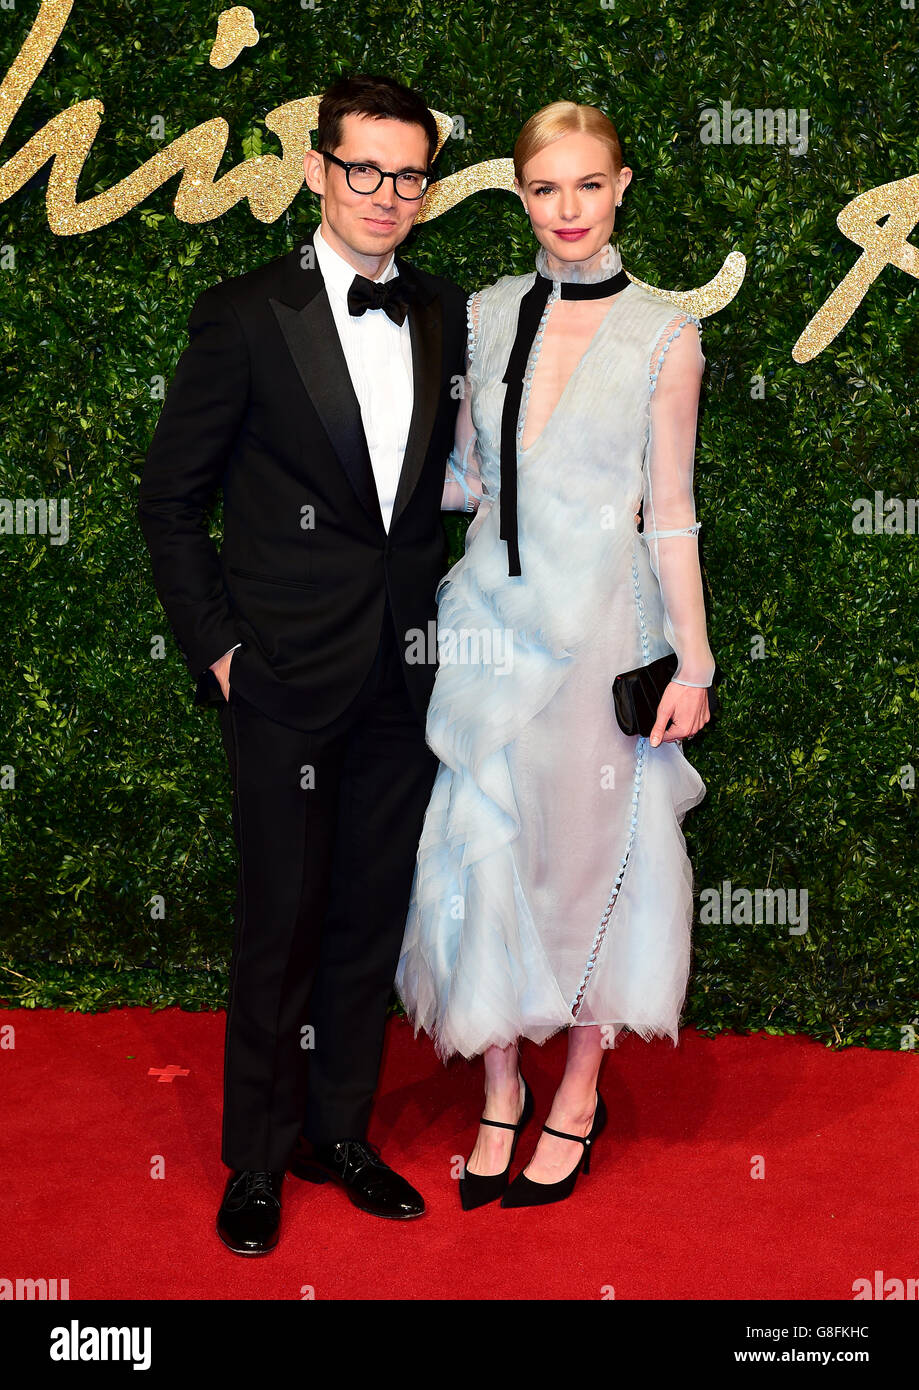 British Fashion Awards 2015 - London - Stock Image